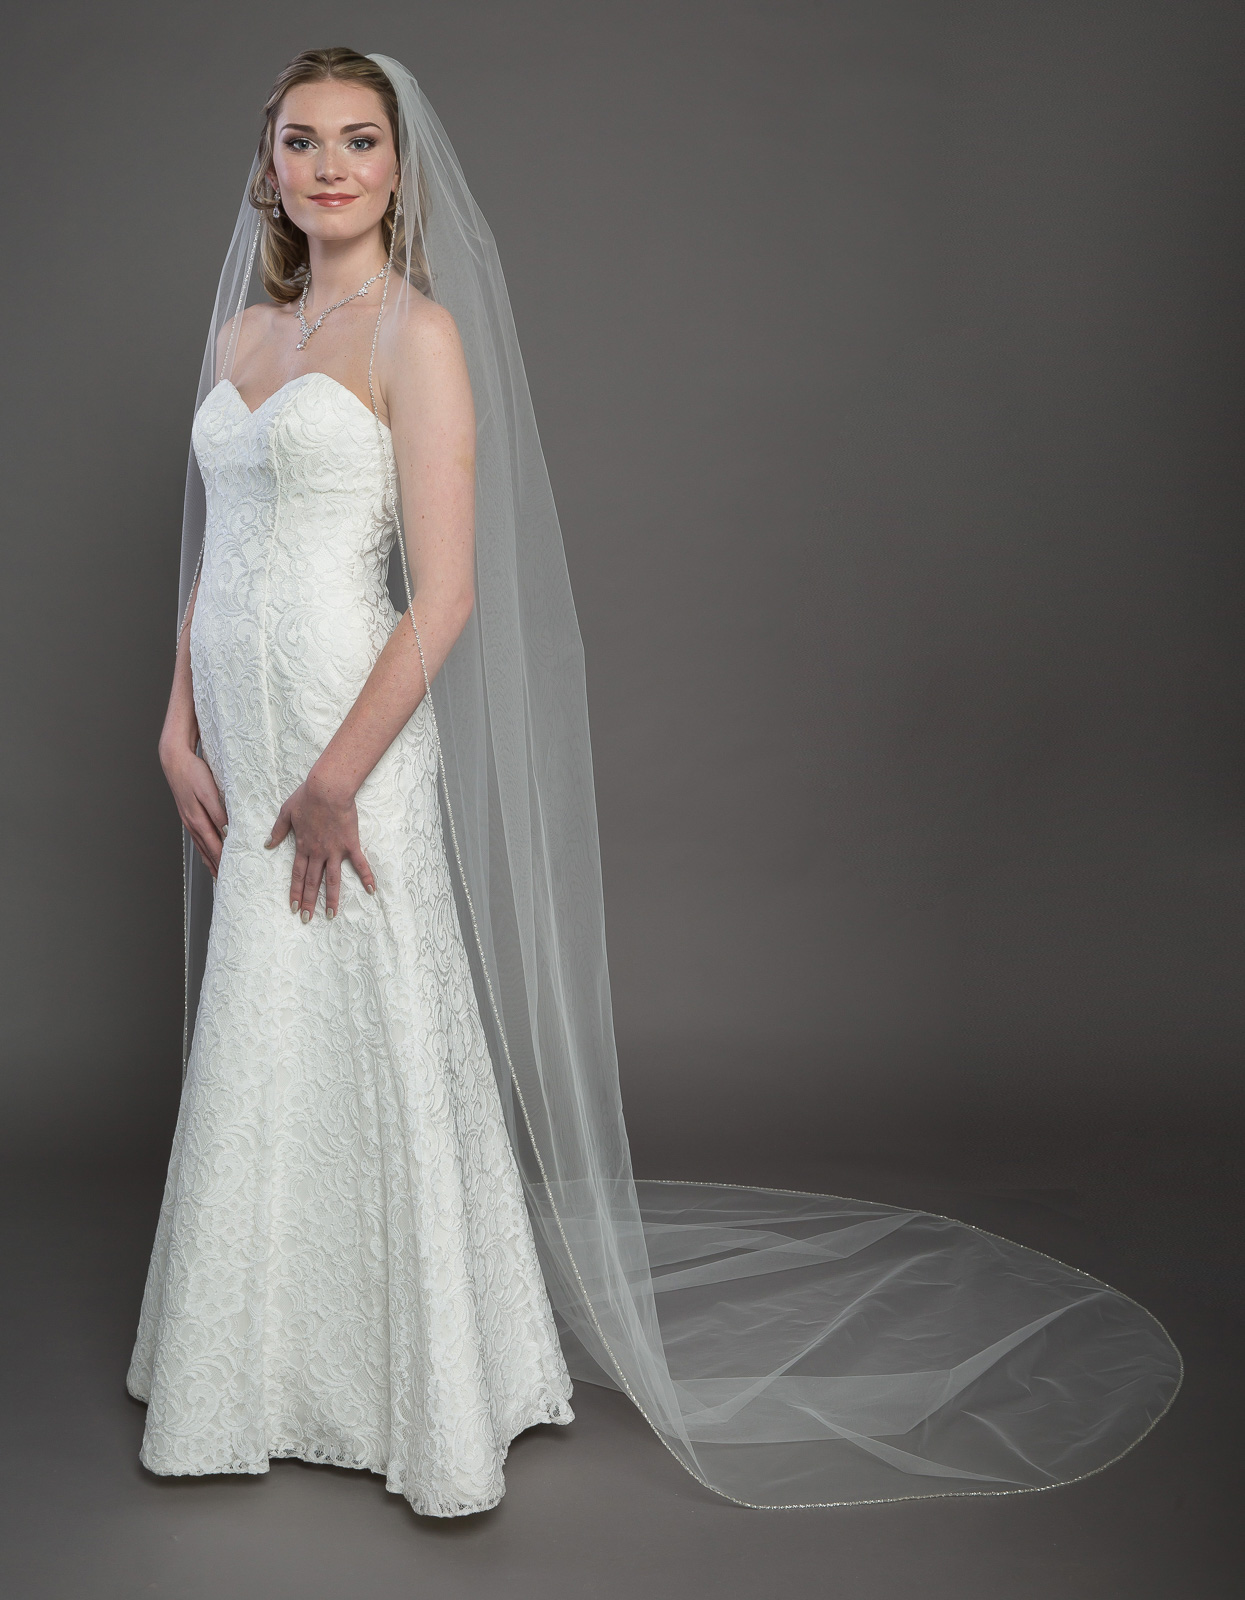 Bridal Classics Marquise Veil Collection MV-2424